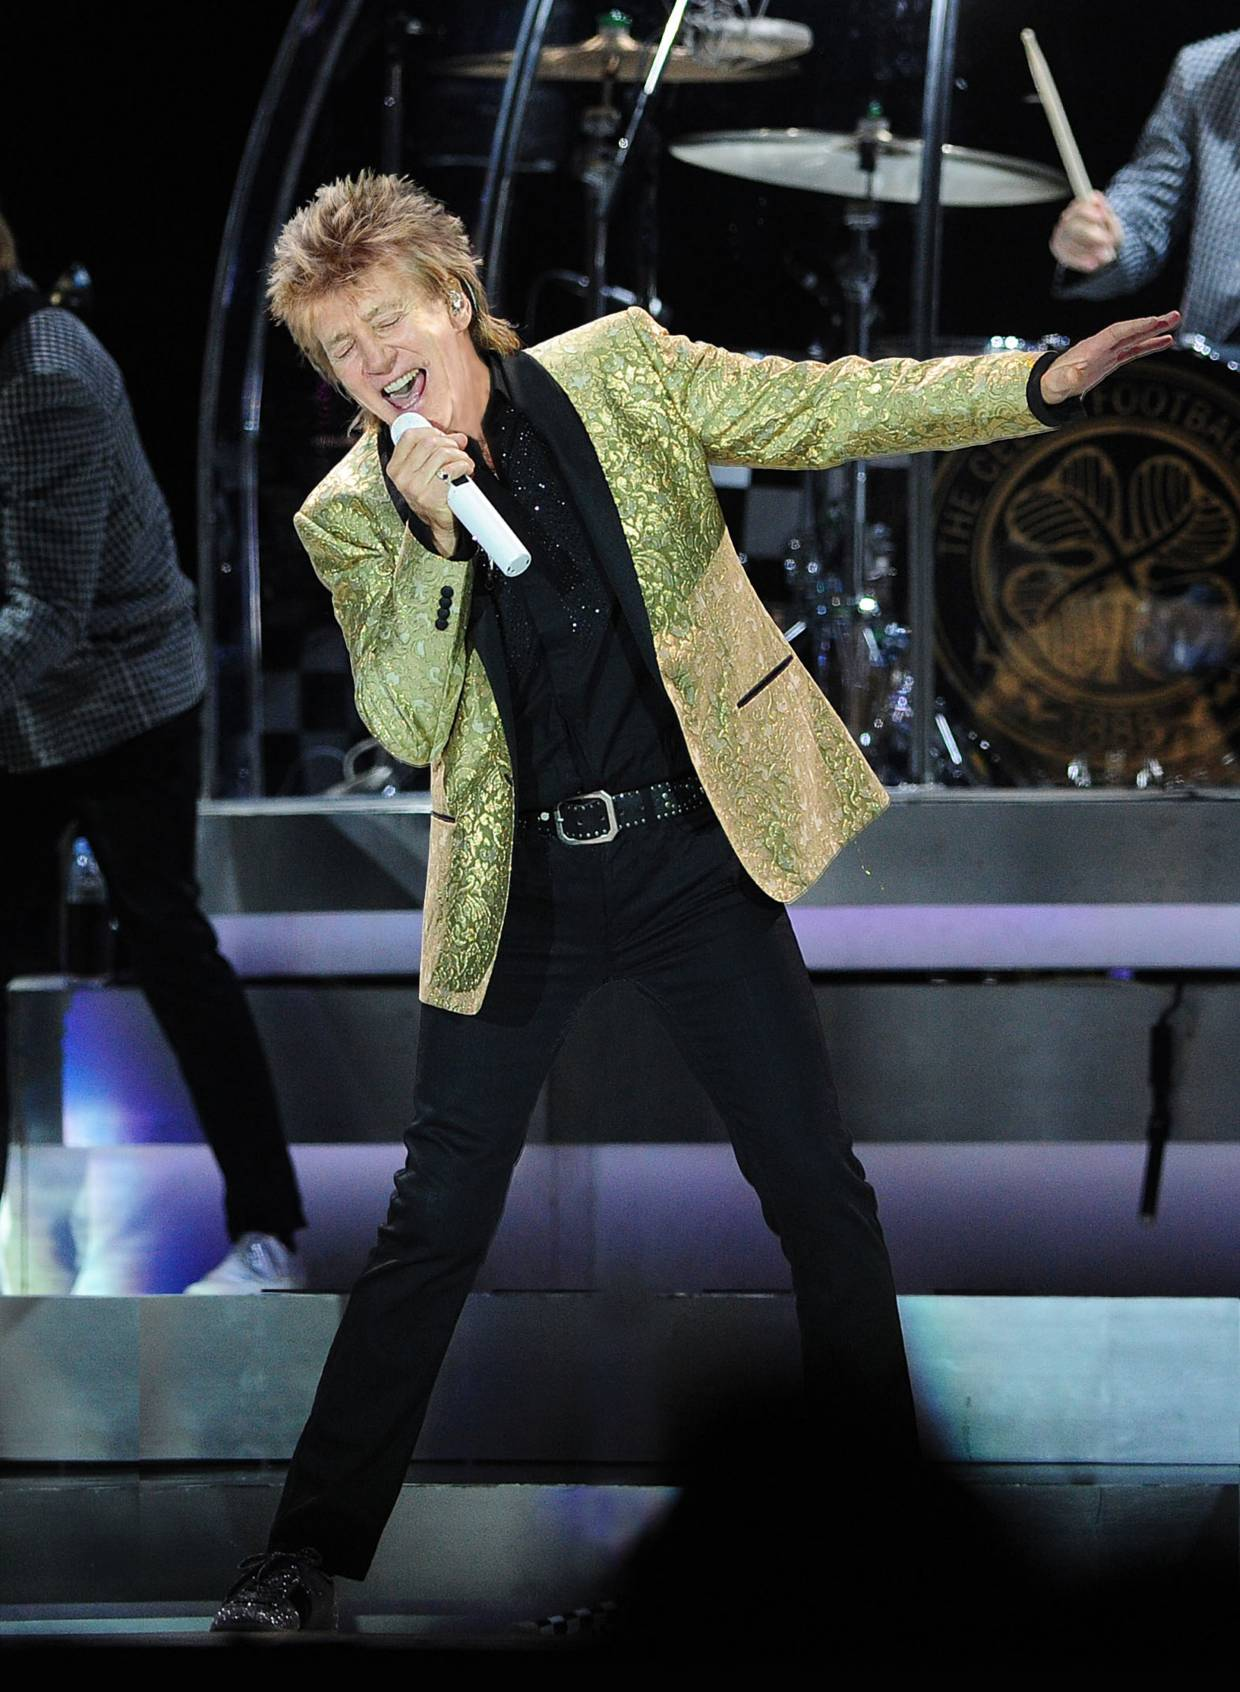 ROD_STEWART_-_CREDIT_Lawrence_Matheson